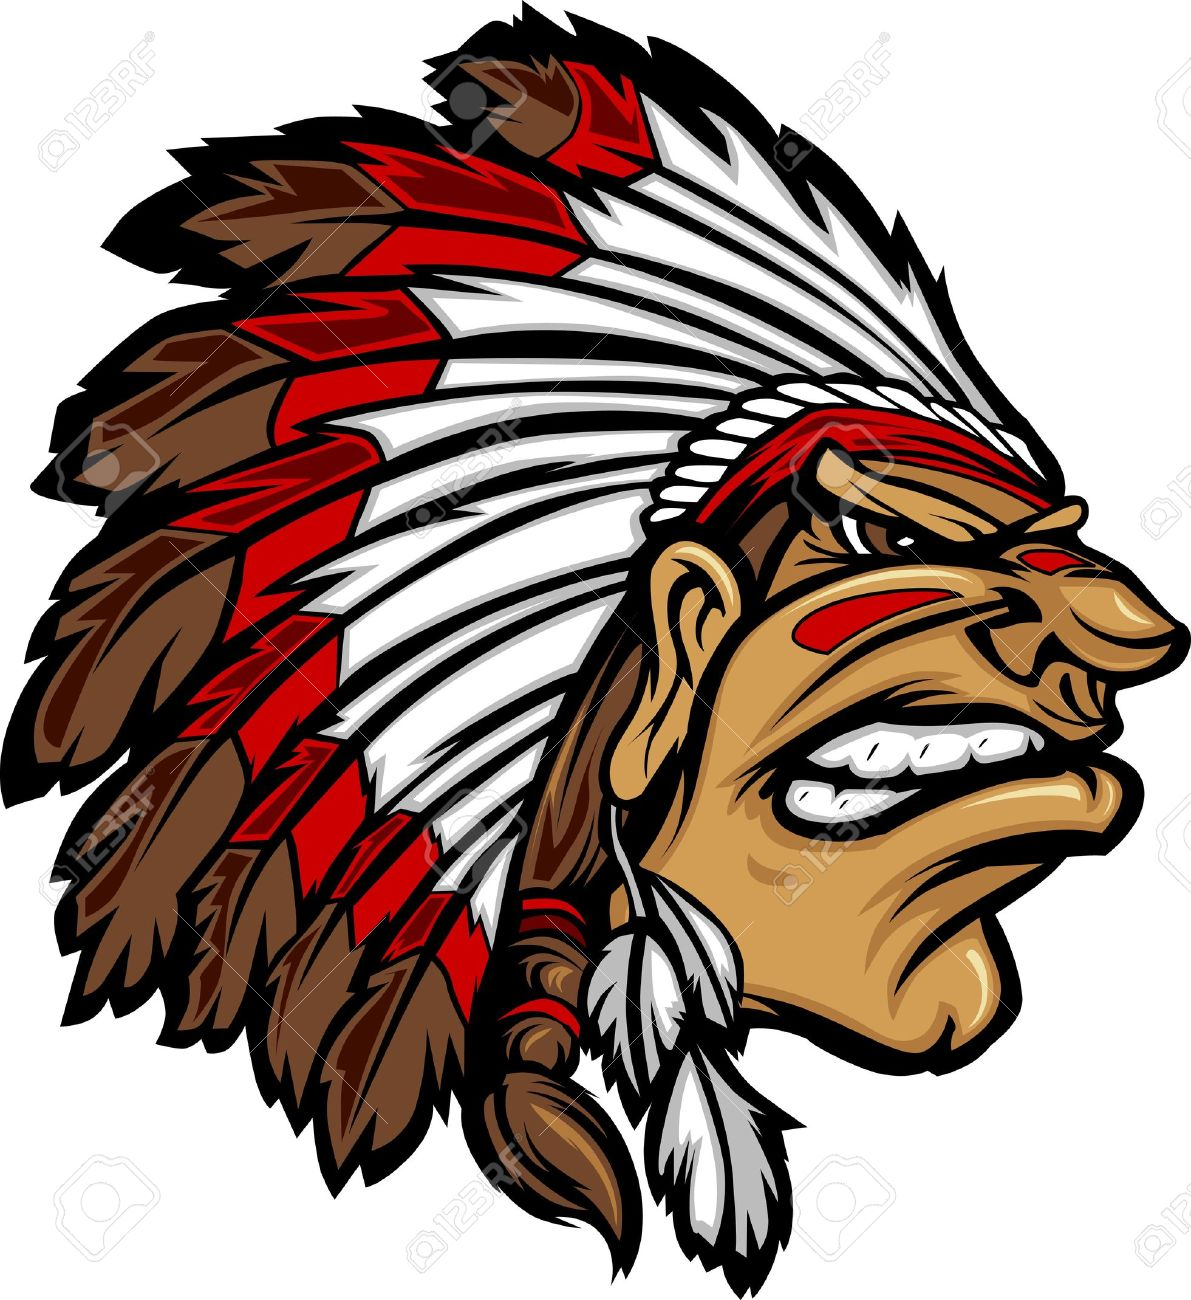 Indian Chief Mascot Head Cartoon Graphic.